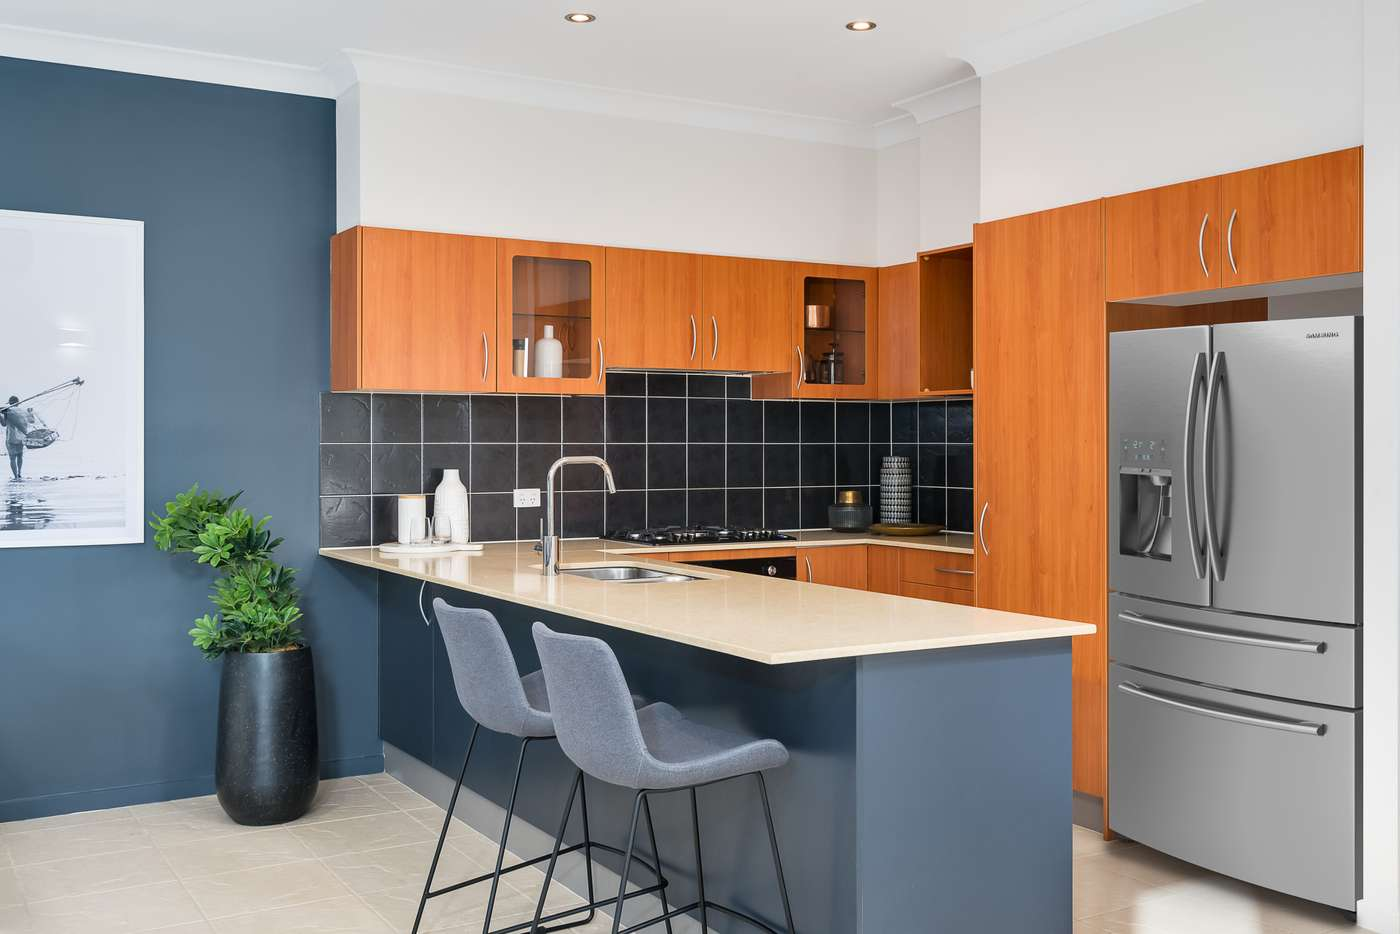 Fifth view of Homely house listing, 17 Cricket Street, Petrie Terrace QLD 4000